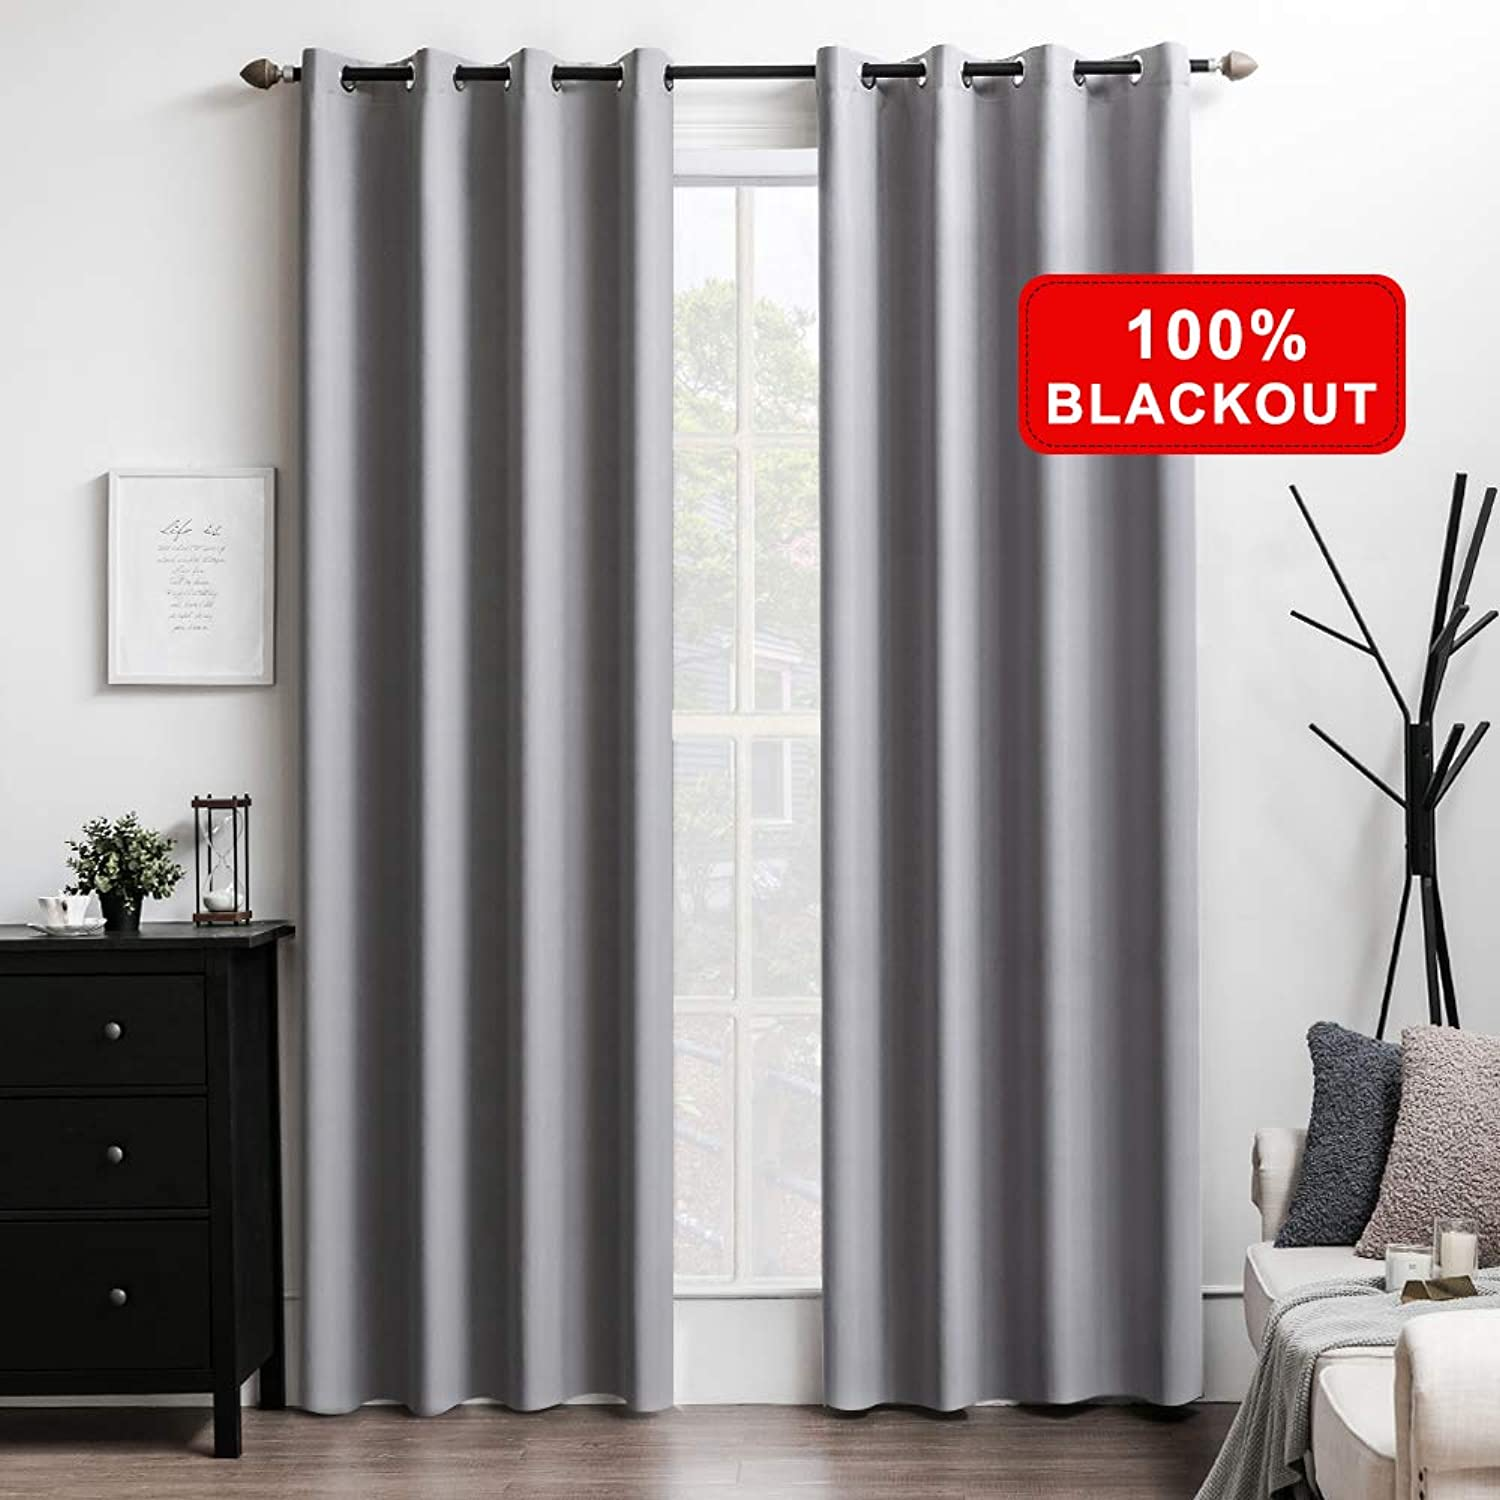 MIULEE 100% Blackout Curtains Thermal Insulated Solid Grommet Curtains Drapes Shades for Bedroom Living Room 2 Panels, 52  x 96 , Light Grey